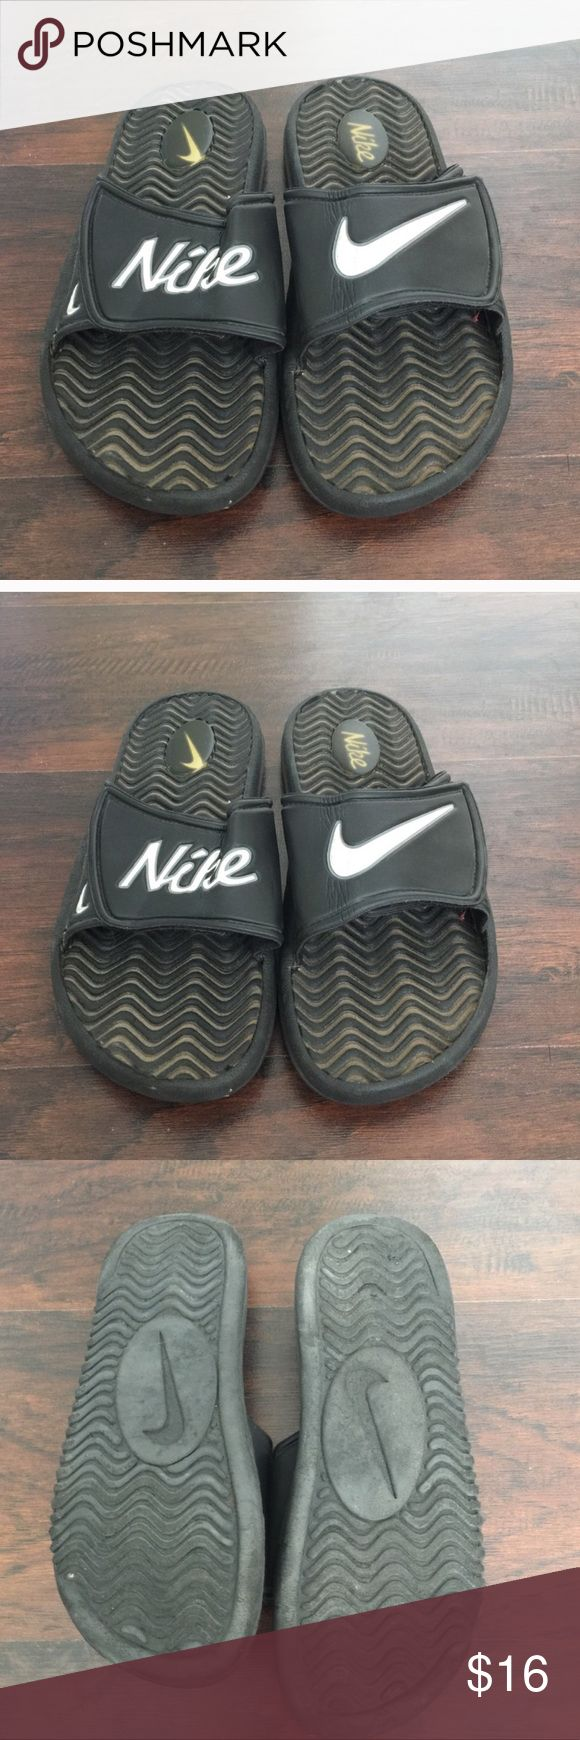 💚 Mens Nike slip on sandals Older pair that I never really wore. In good condition. Velcro straps.  This is a special item!   Our closet is built on quality and quantity!   We want you to get the most bang for your buck!   Add💚💚💚 three $10 items to a bundle for only $22!  Add 💙💙 two $22 items to a bundle for only $32!  Add 💙 one $22 and 💚 one $10 item to a bundle for only $26! Nike Shoes Sandals & Flip-Flops